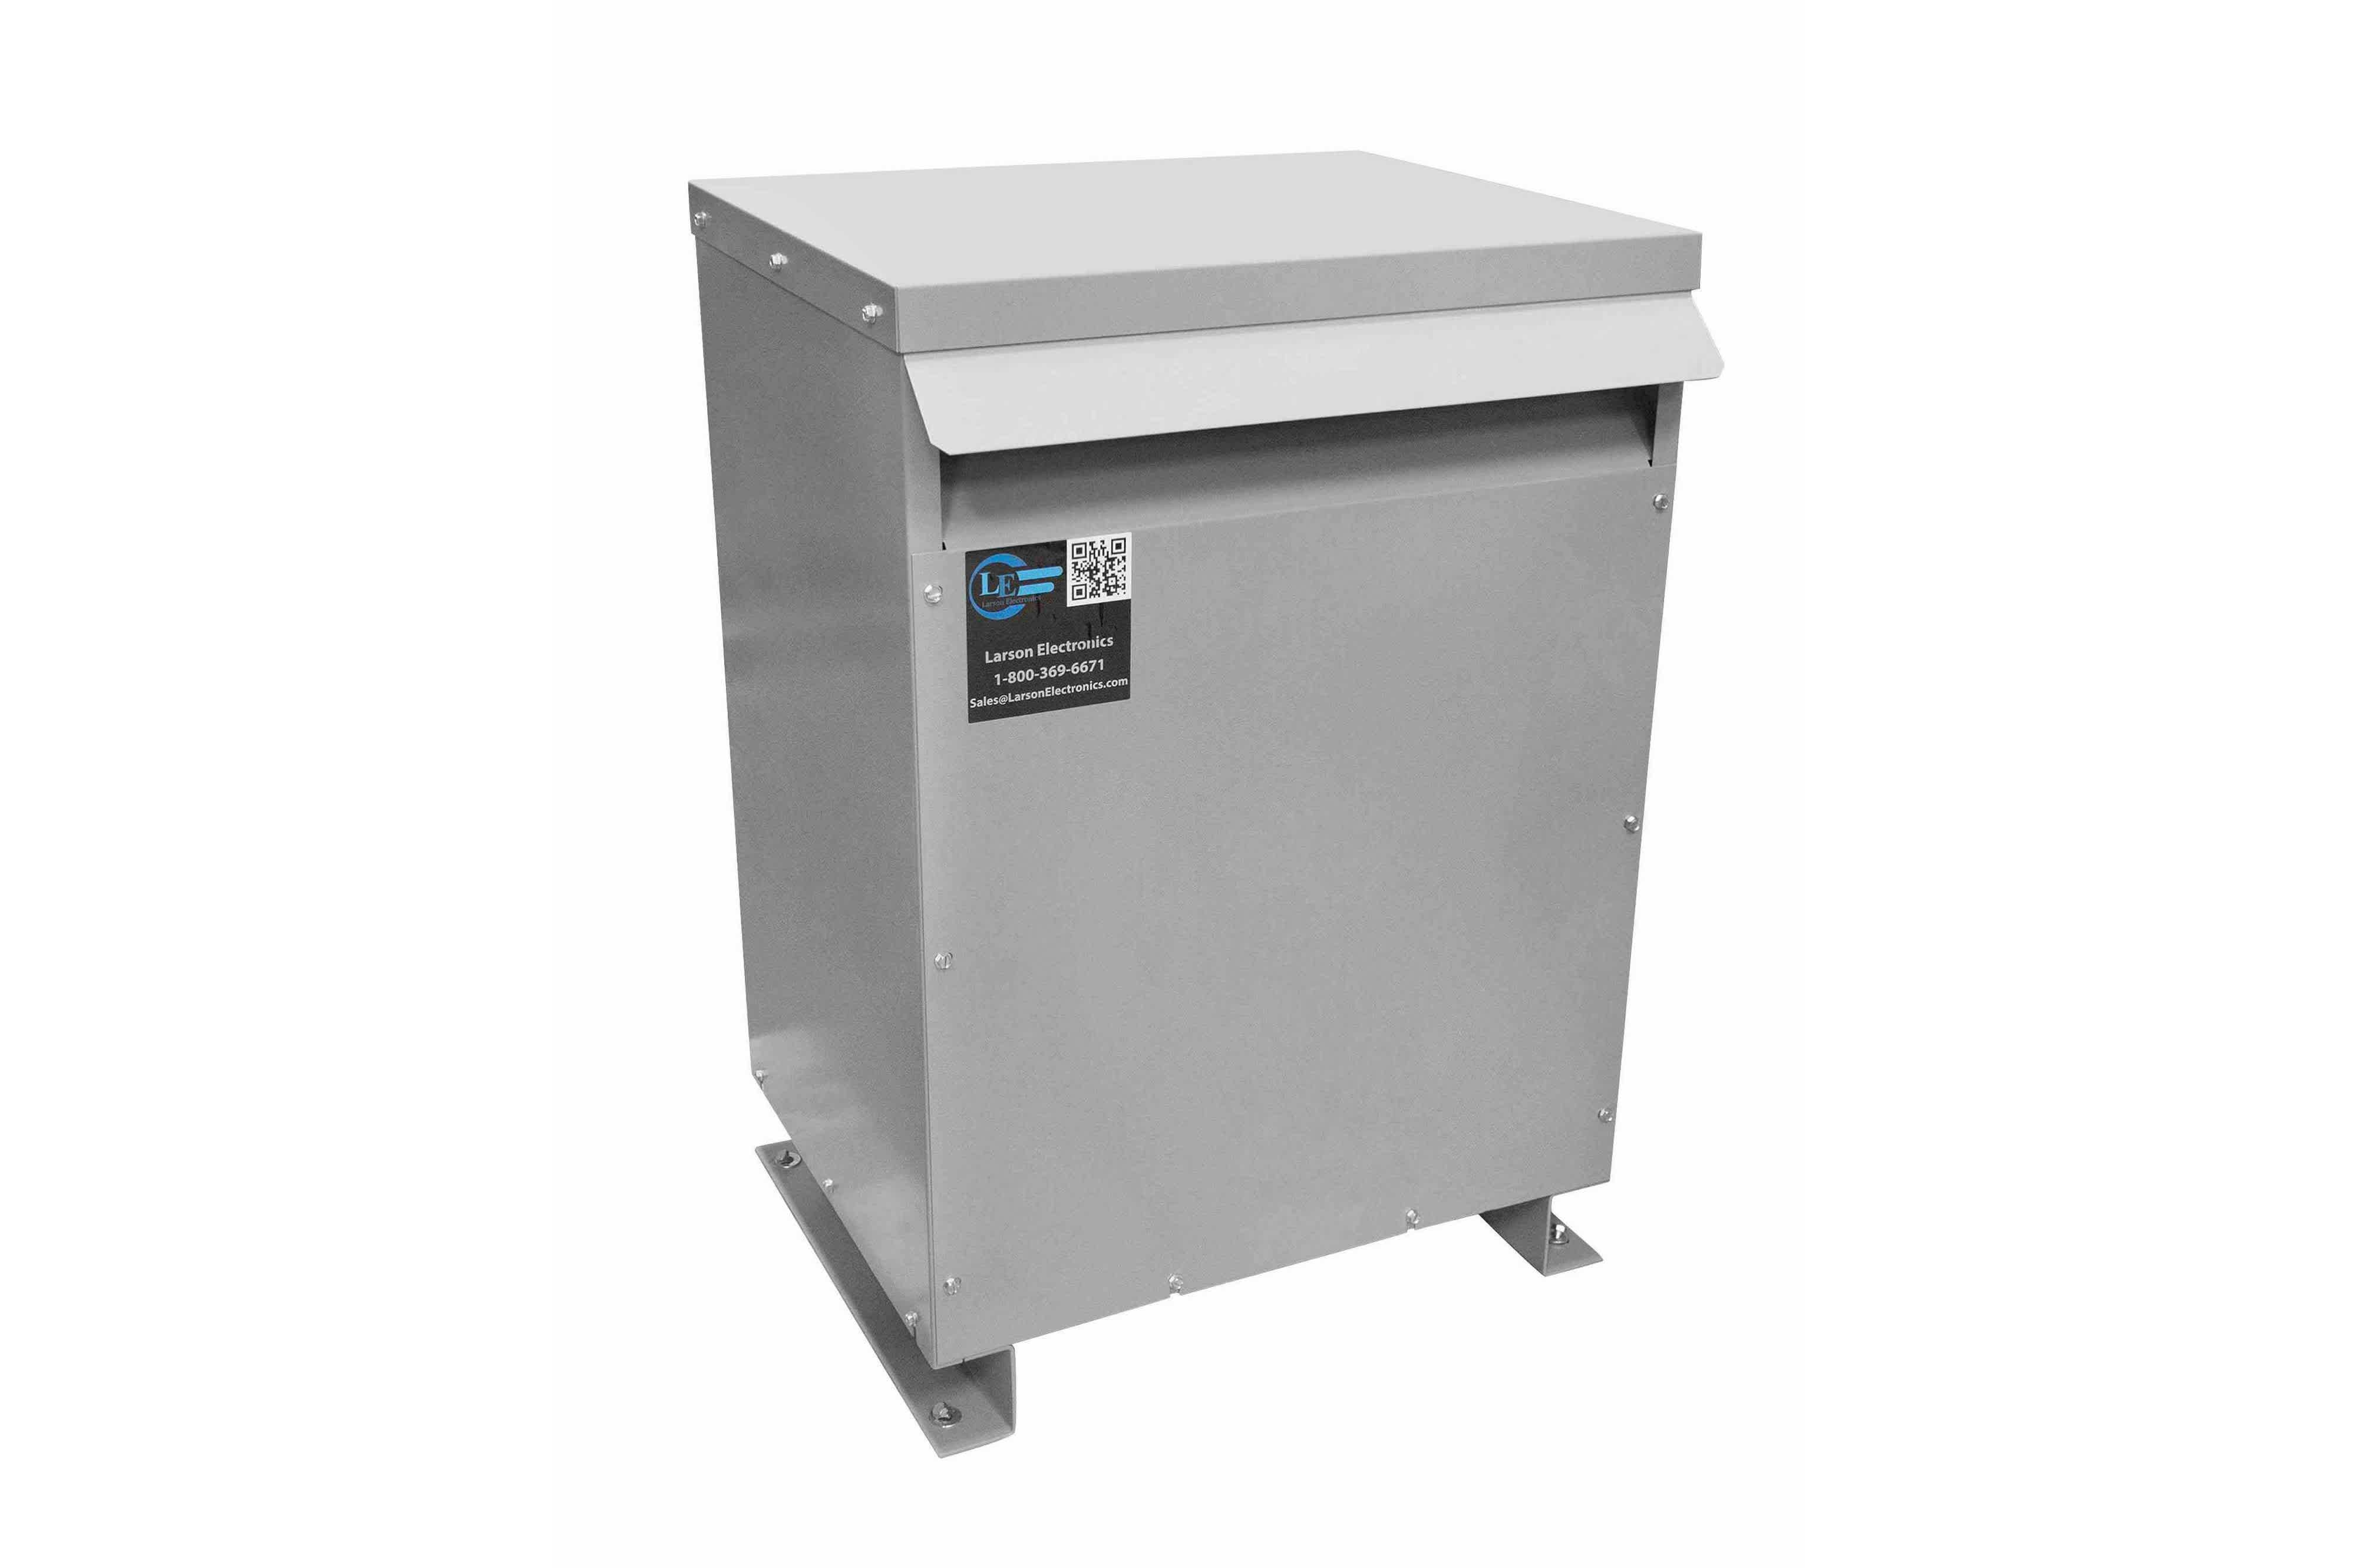 1000 kVA 3PH Isolation Transformer, 600V Wye Primary, 480V Delta Secondary, N3R, Ventilated, 60 Hz